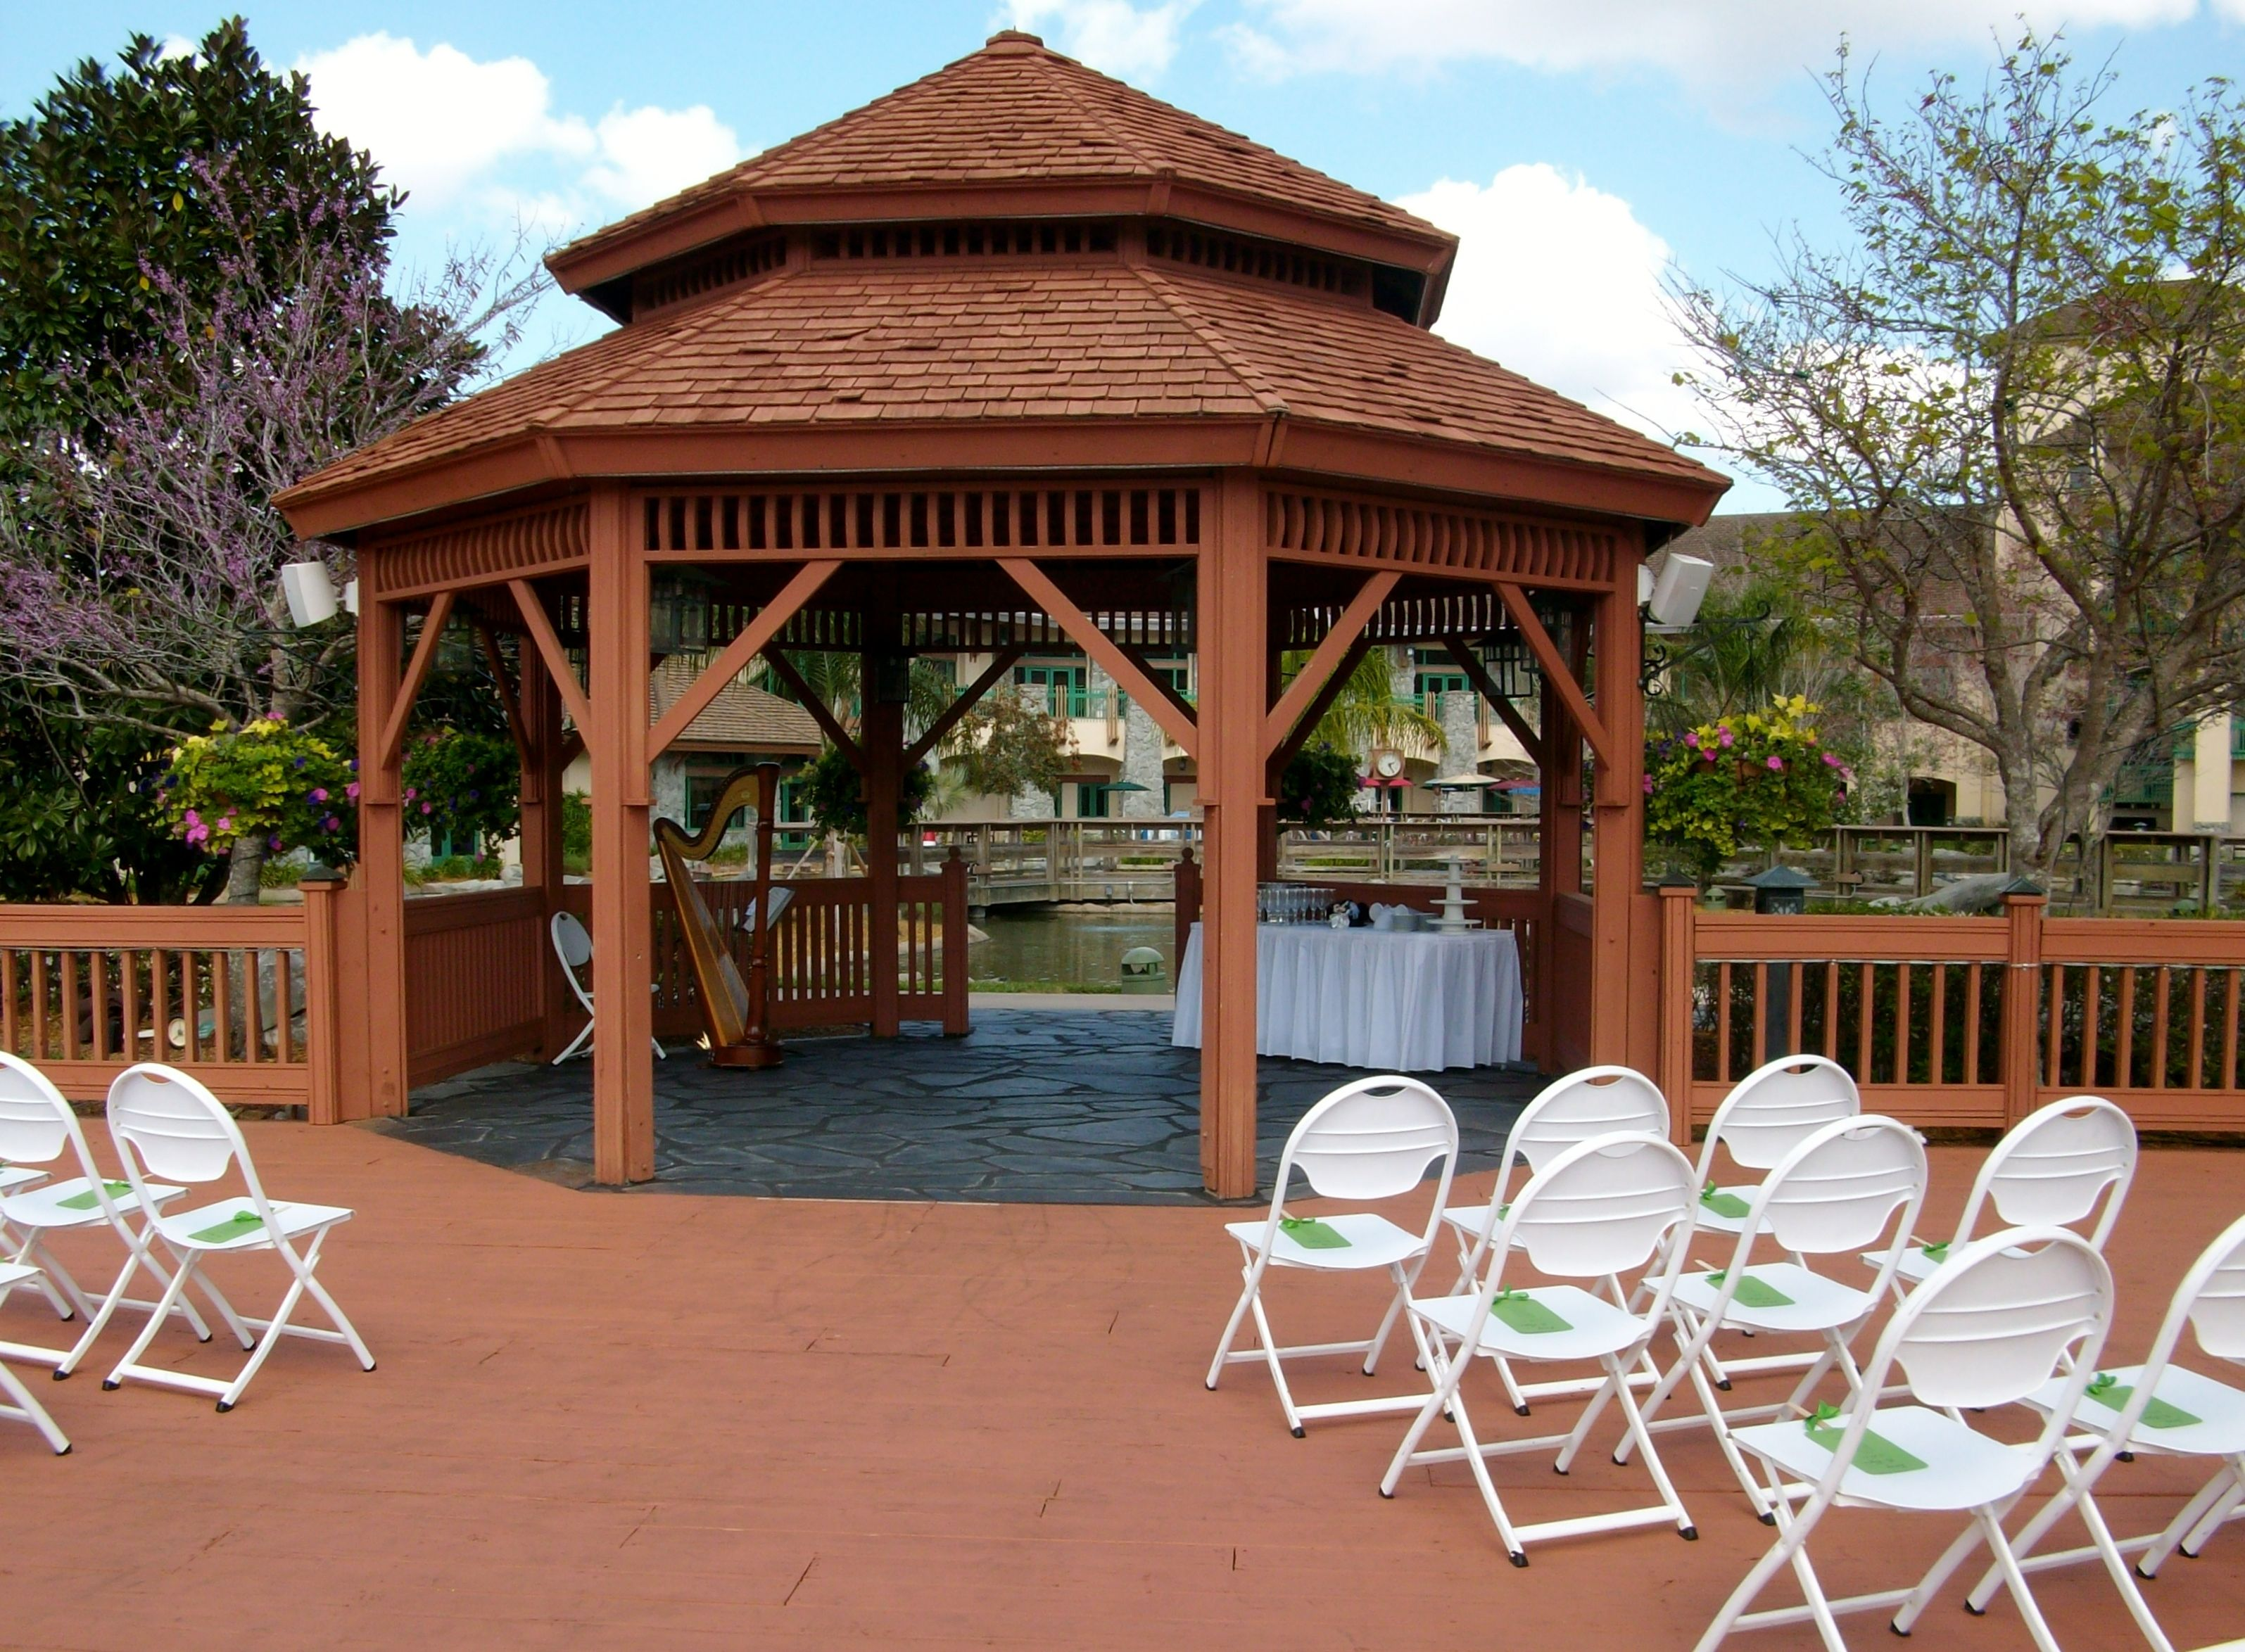 Wedding Gazebo At Shades Of Green, Perfect For An Outdoor